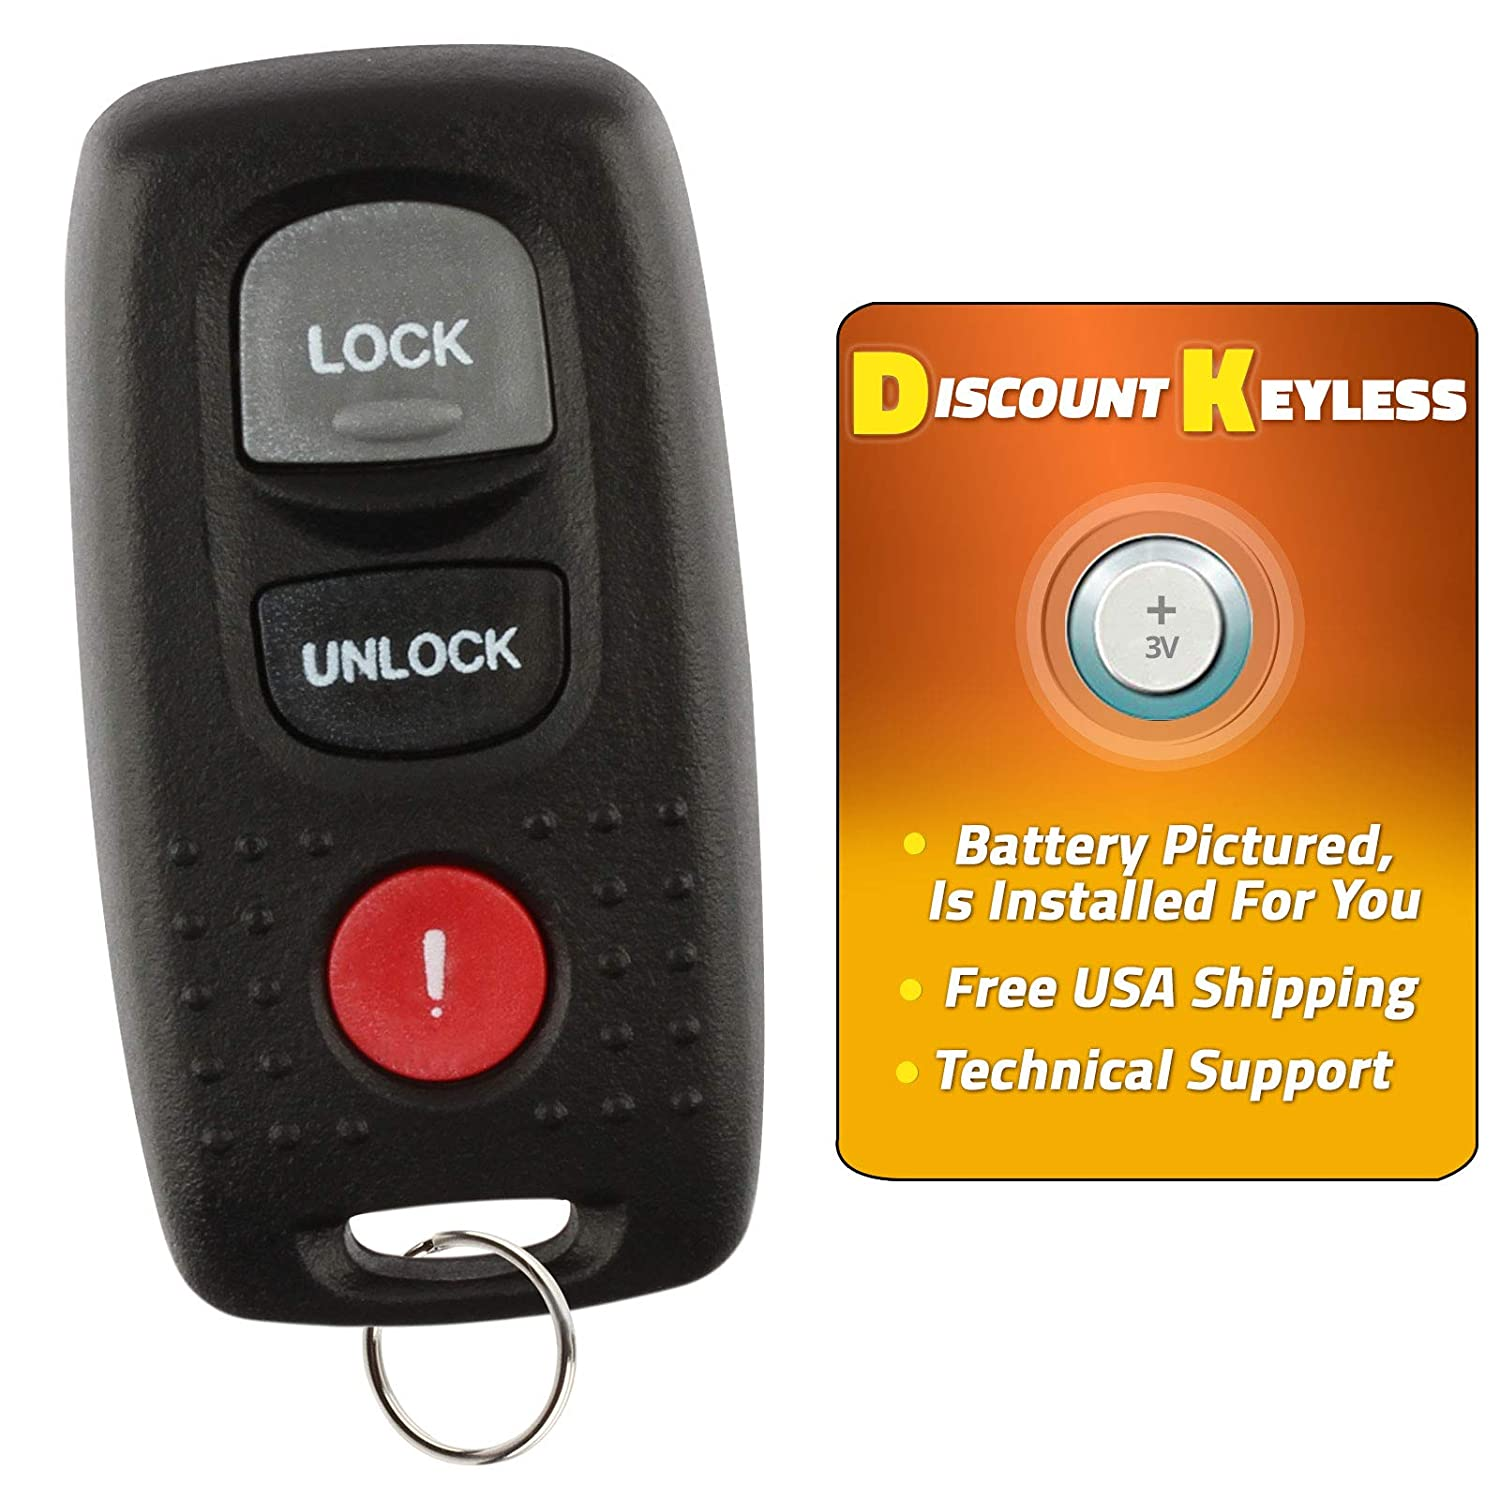 Remote Keyless Entry For 2004 2005 2006 Mazda MPV Car Key Fob Dash Cams, Alarms & Security Automotive